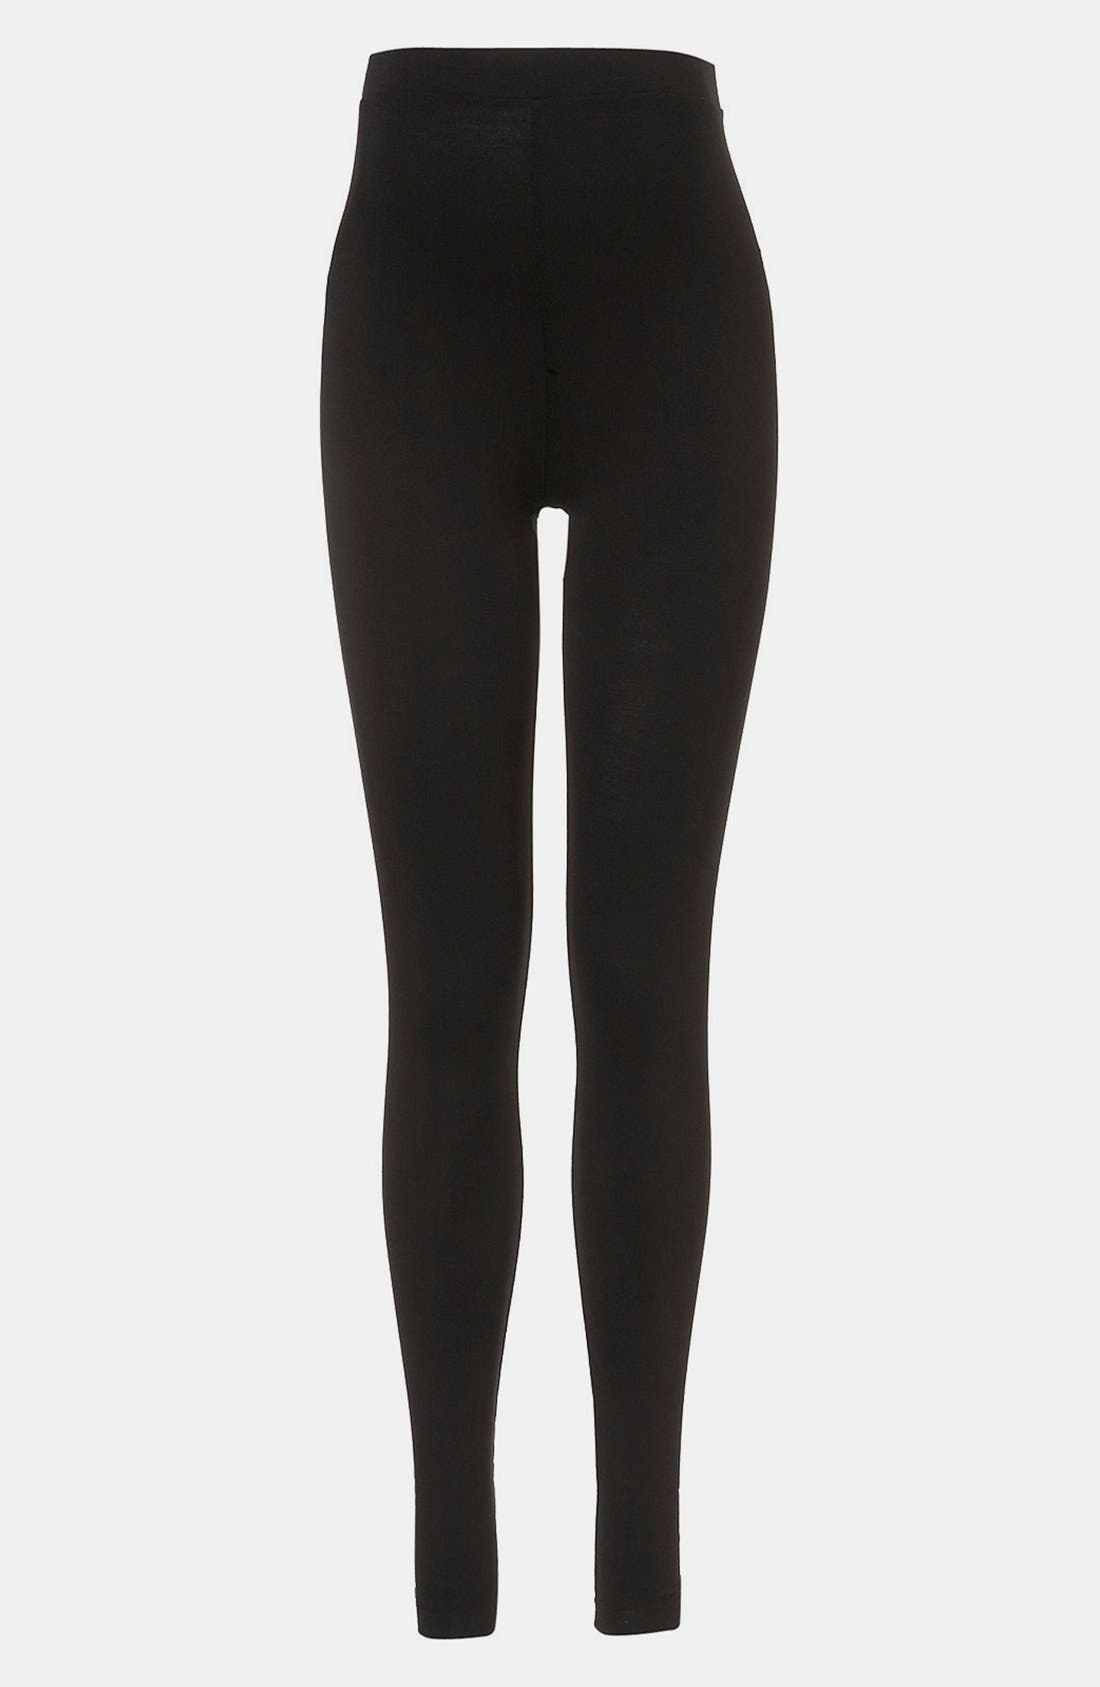 Alternate Image 1 Selected - Topshop Maternity High Waist Ankle Leggings